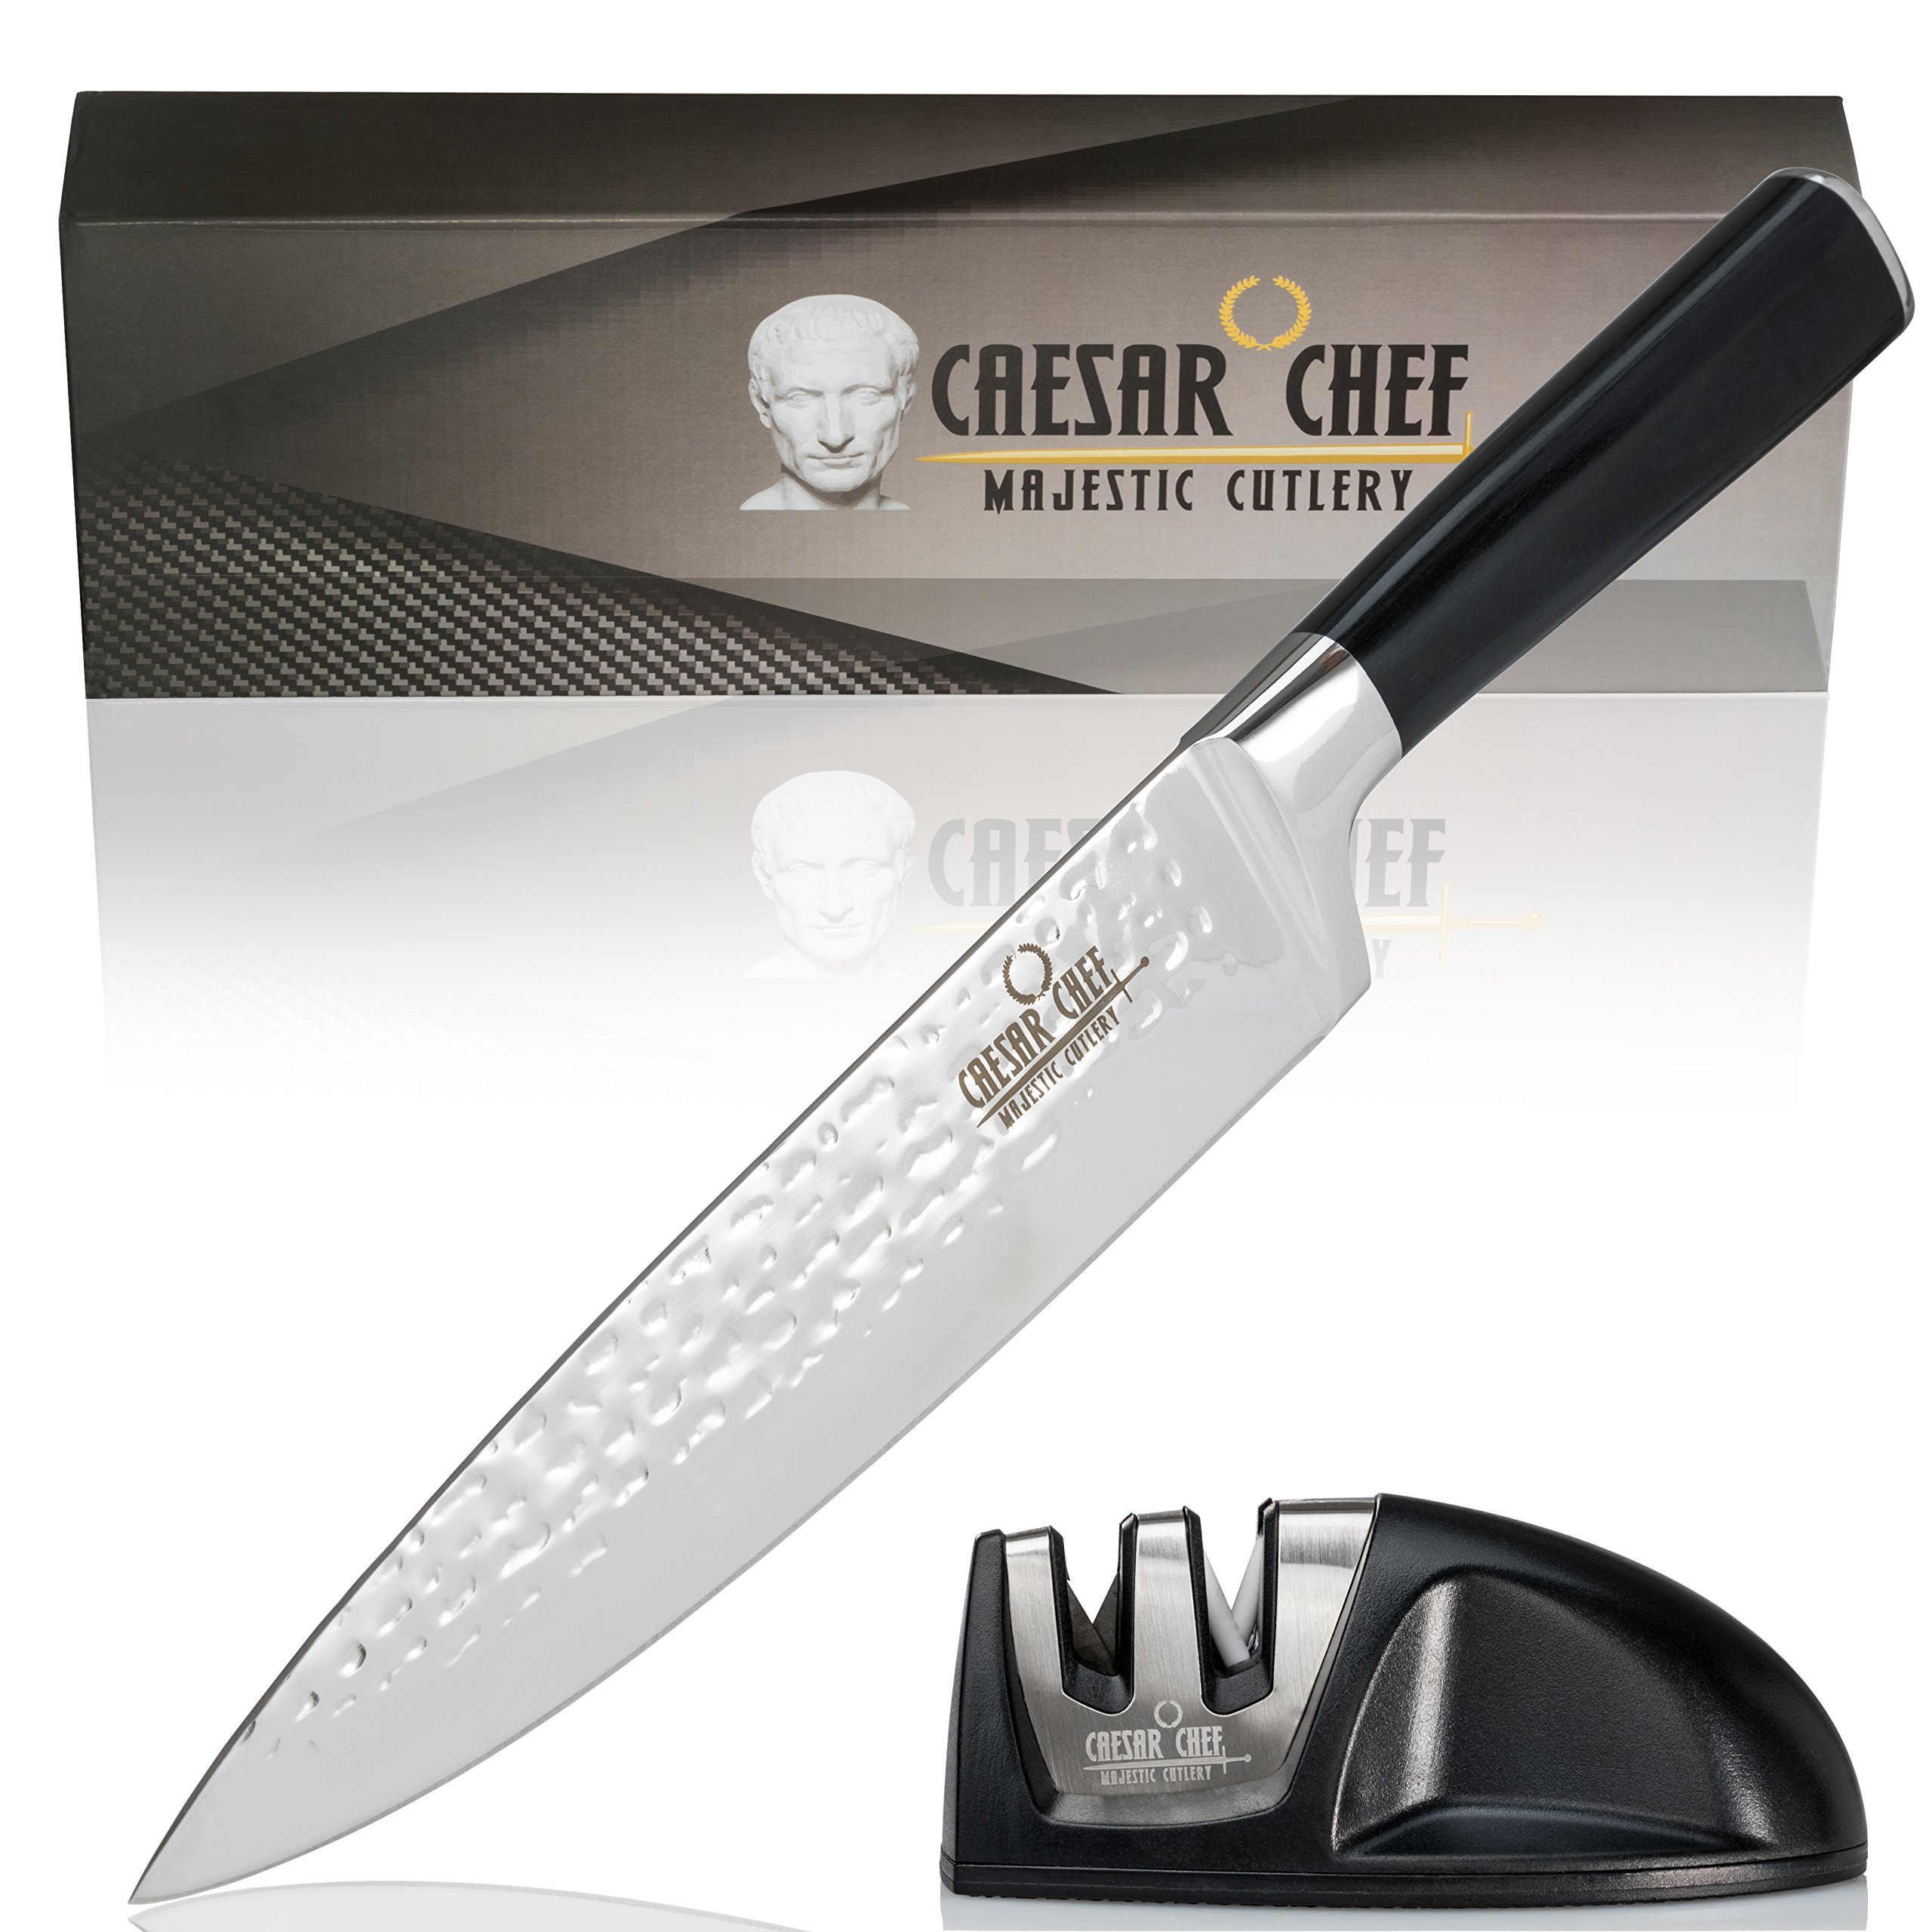 "Caesar Chef Professional Chef's Knife and Sharpener Set - Ultra Sharp 8"" High Carbon Stainless Steel Kitchen Knife with Ergonomic Handle will cut, slice, dice, chop and mince all foods with ease by"